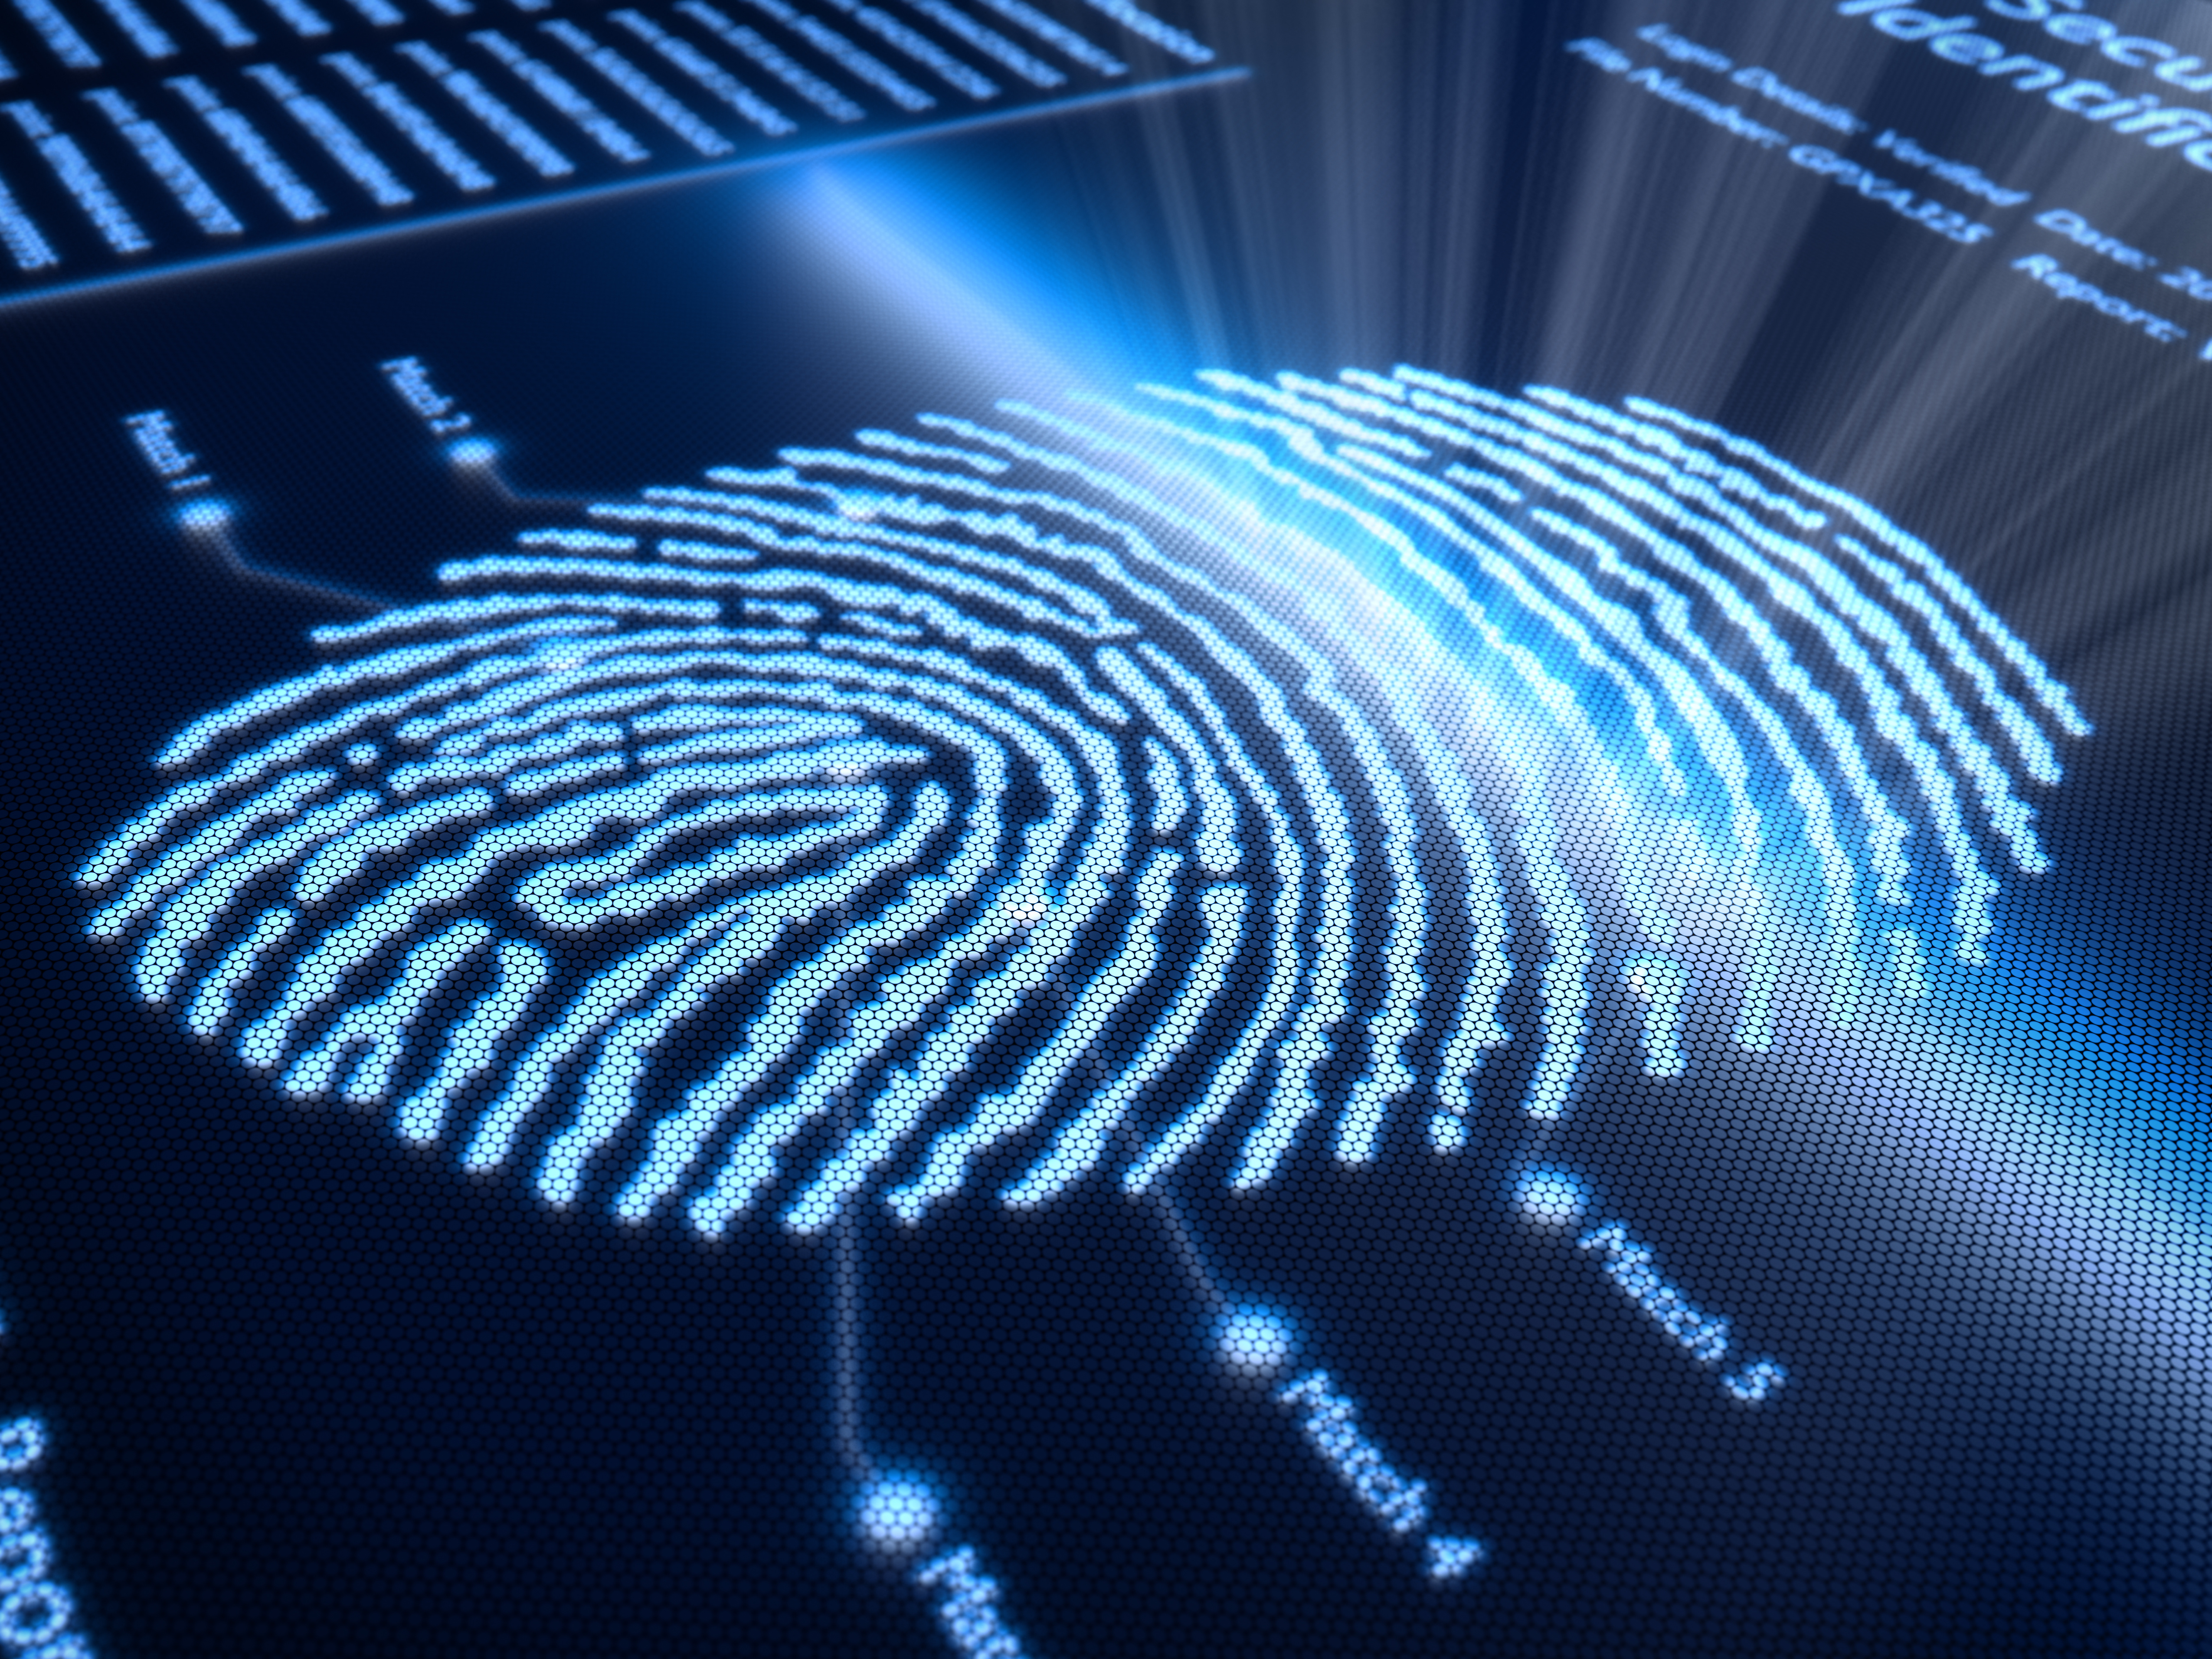 How Fingerprints are Obtained and Used